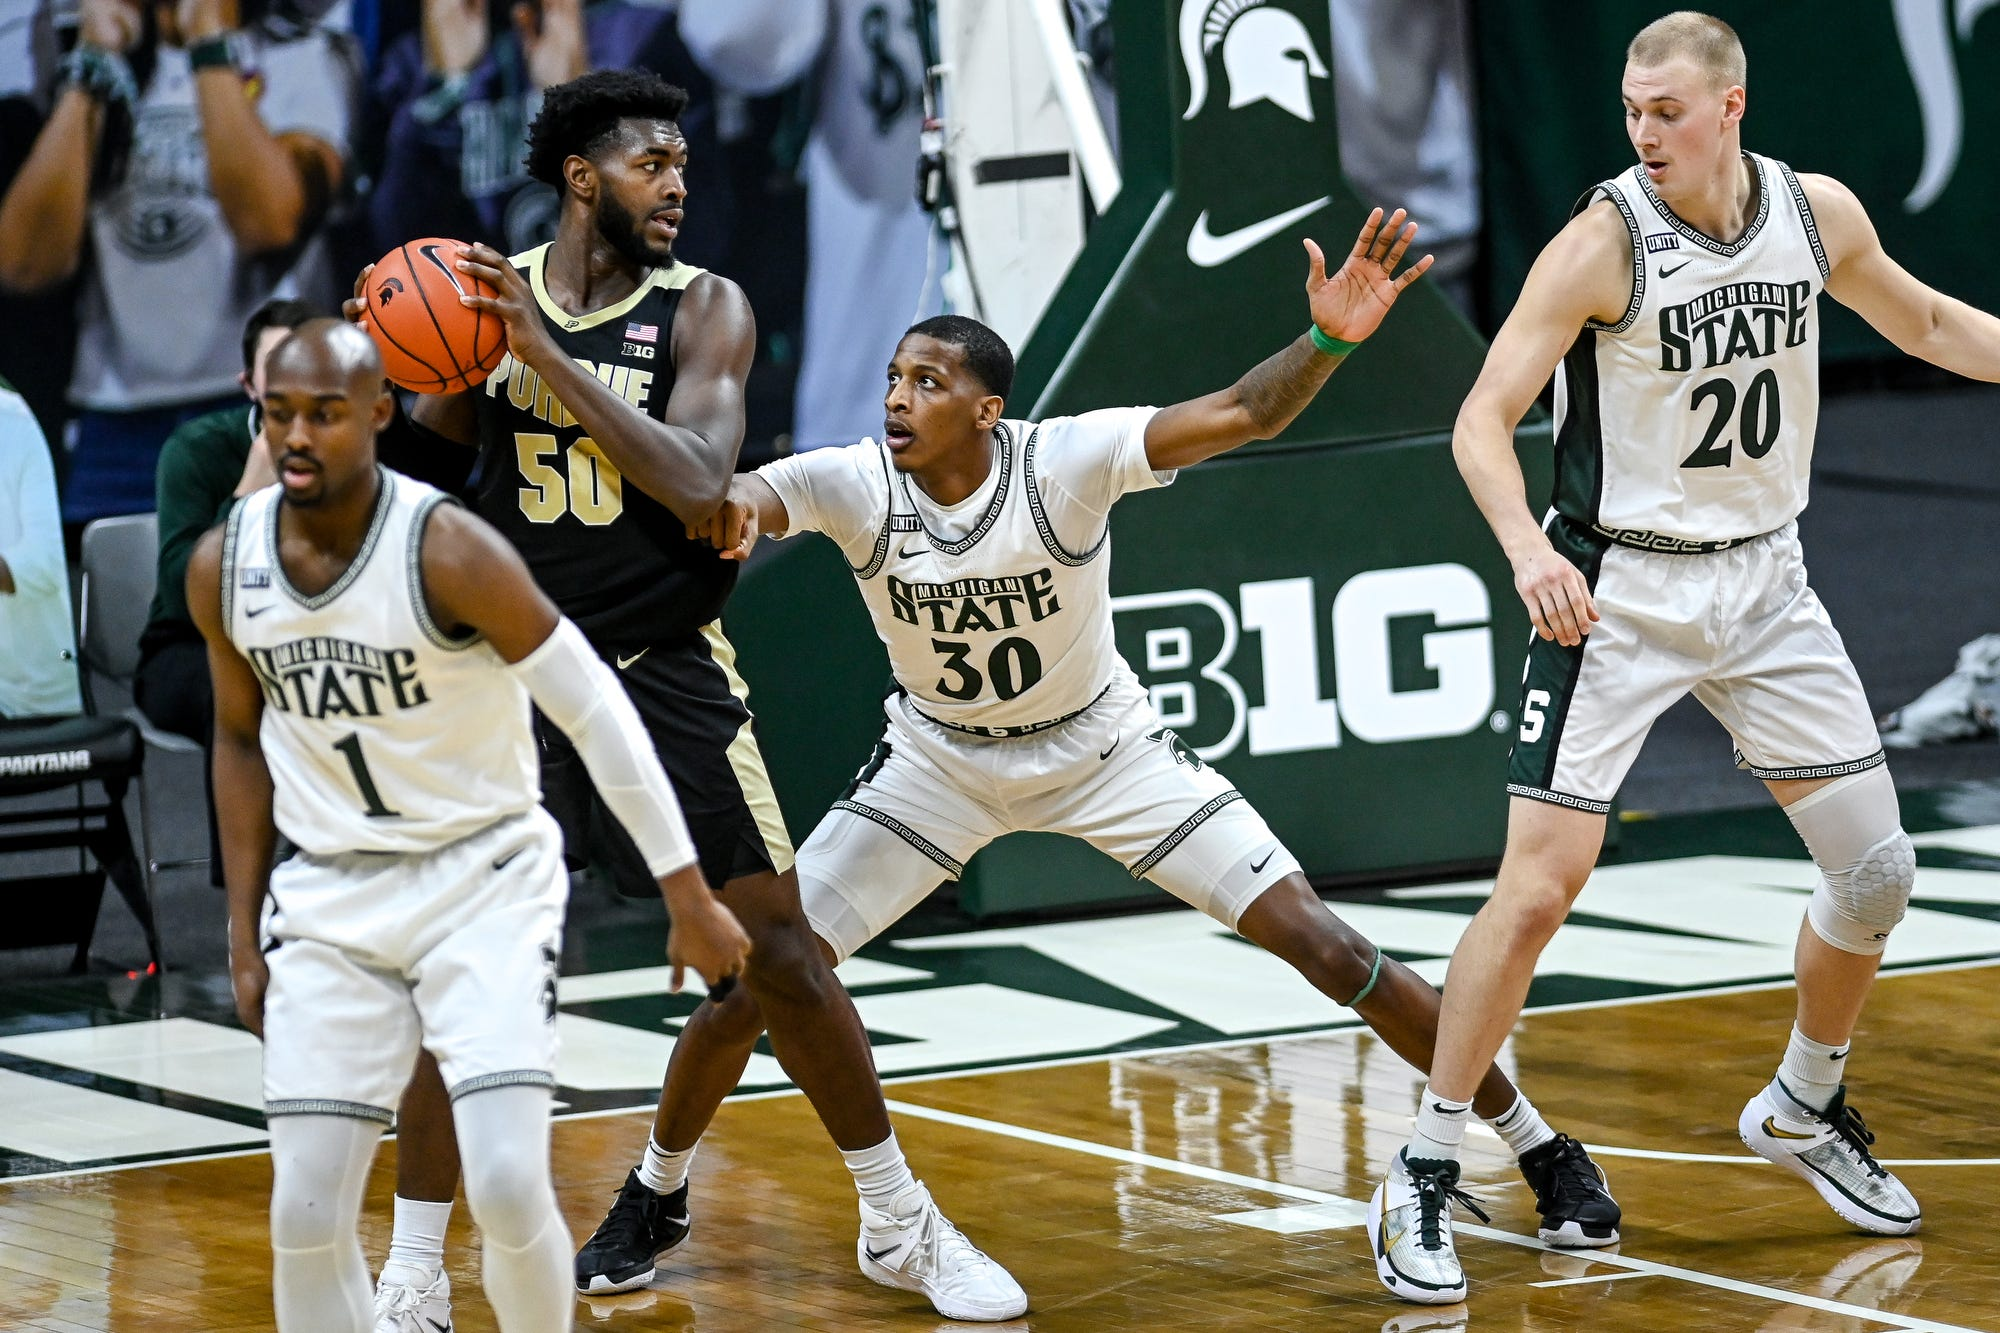 Marcus Bingham Jr. of Michigan, right, Trevion Williams guard from Purdue during the first half on Friday, Jan.8, 2021, at the Priceline Center in East Lansing.